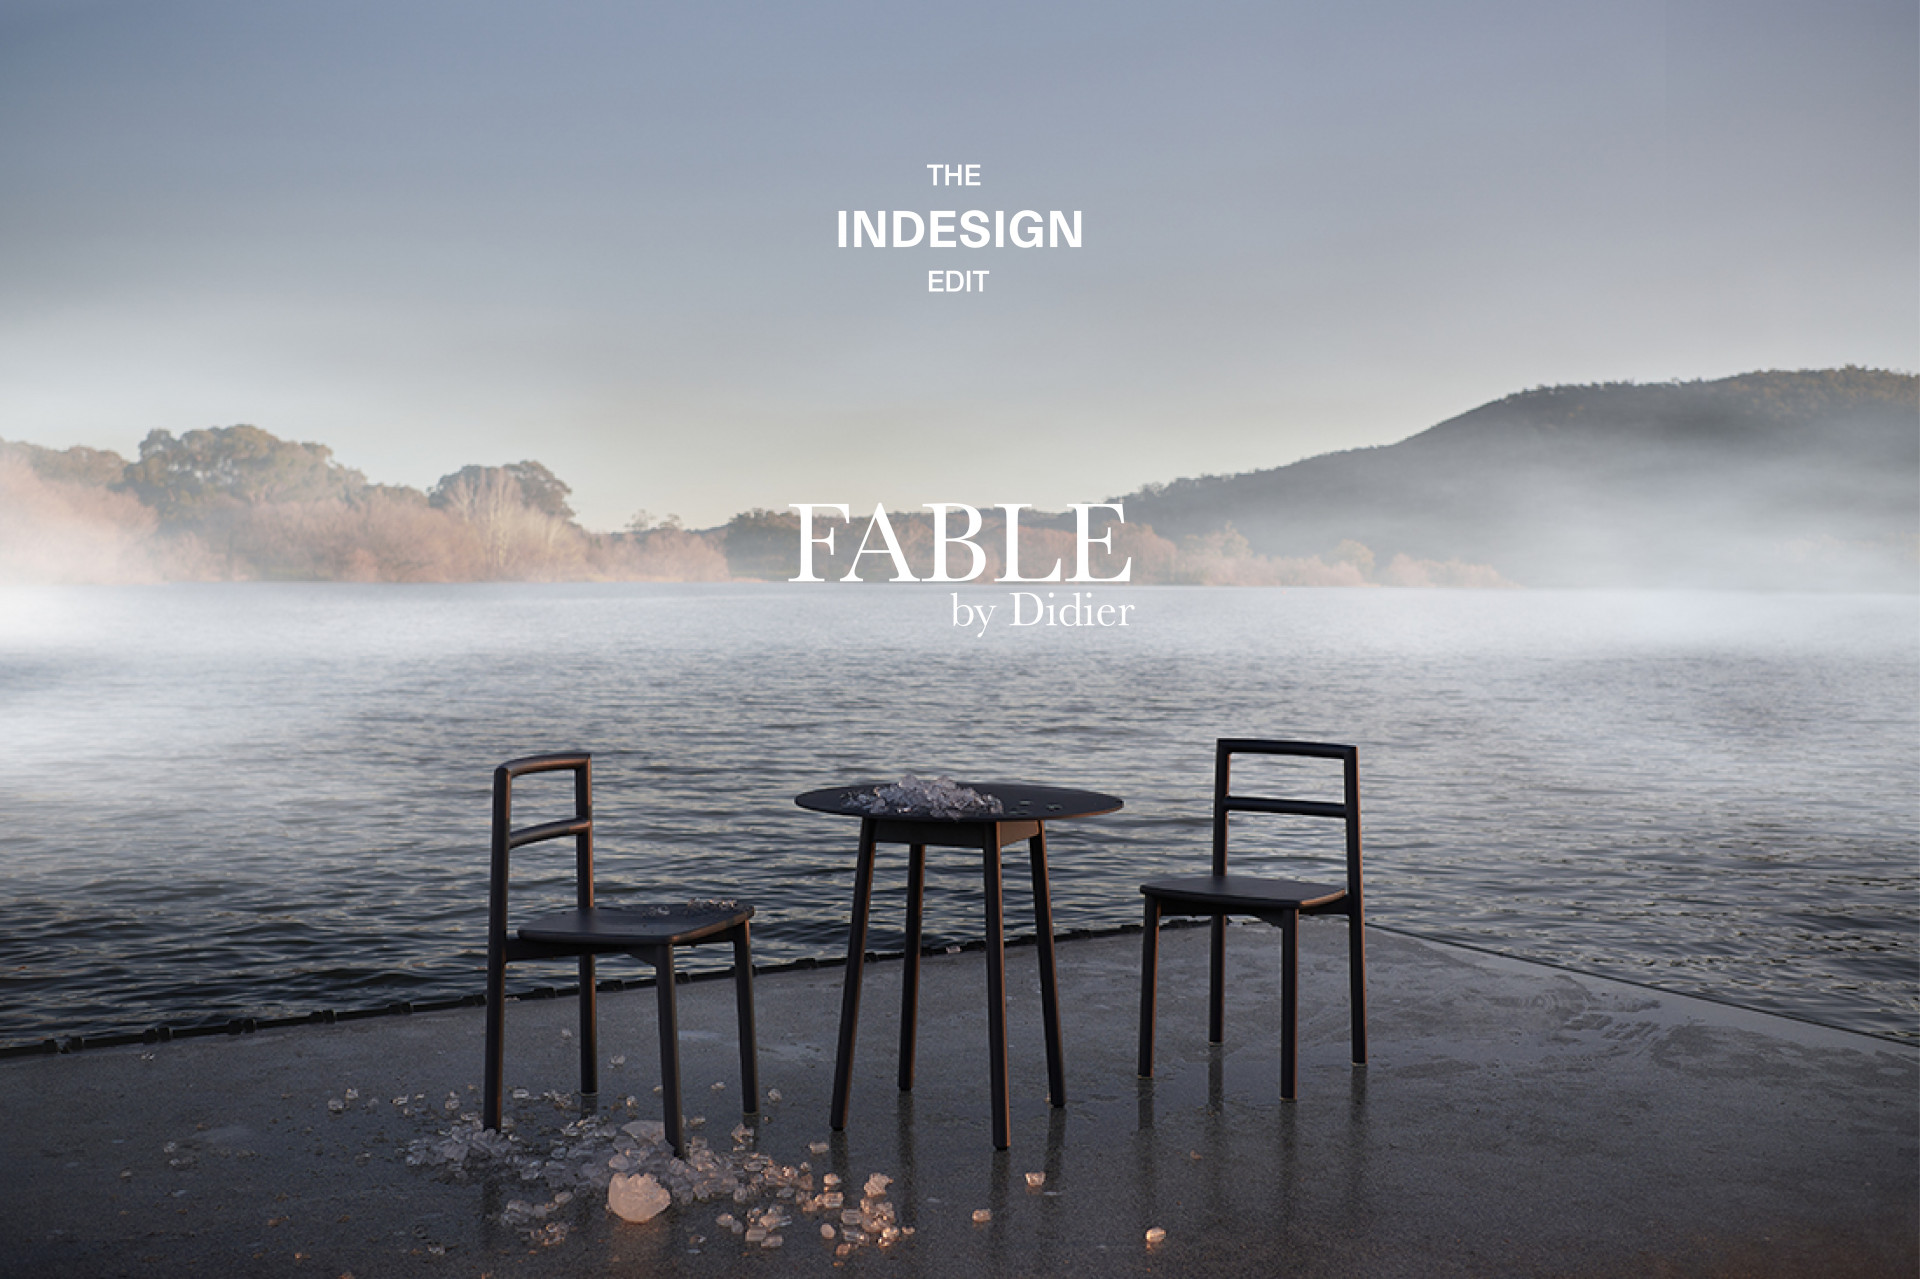 The Indesign Edit: FABLE by Didier